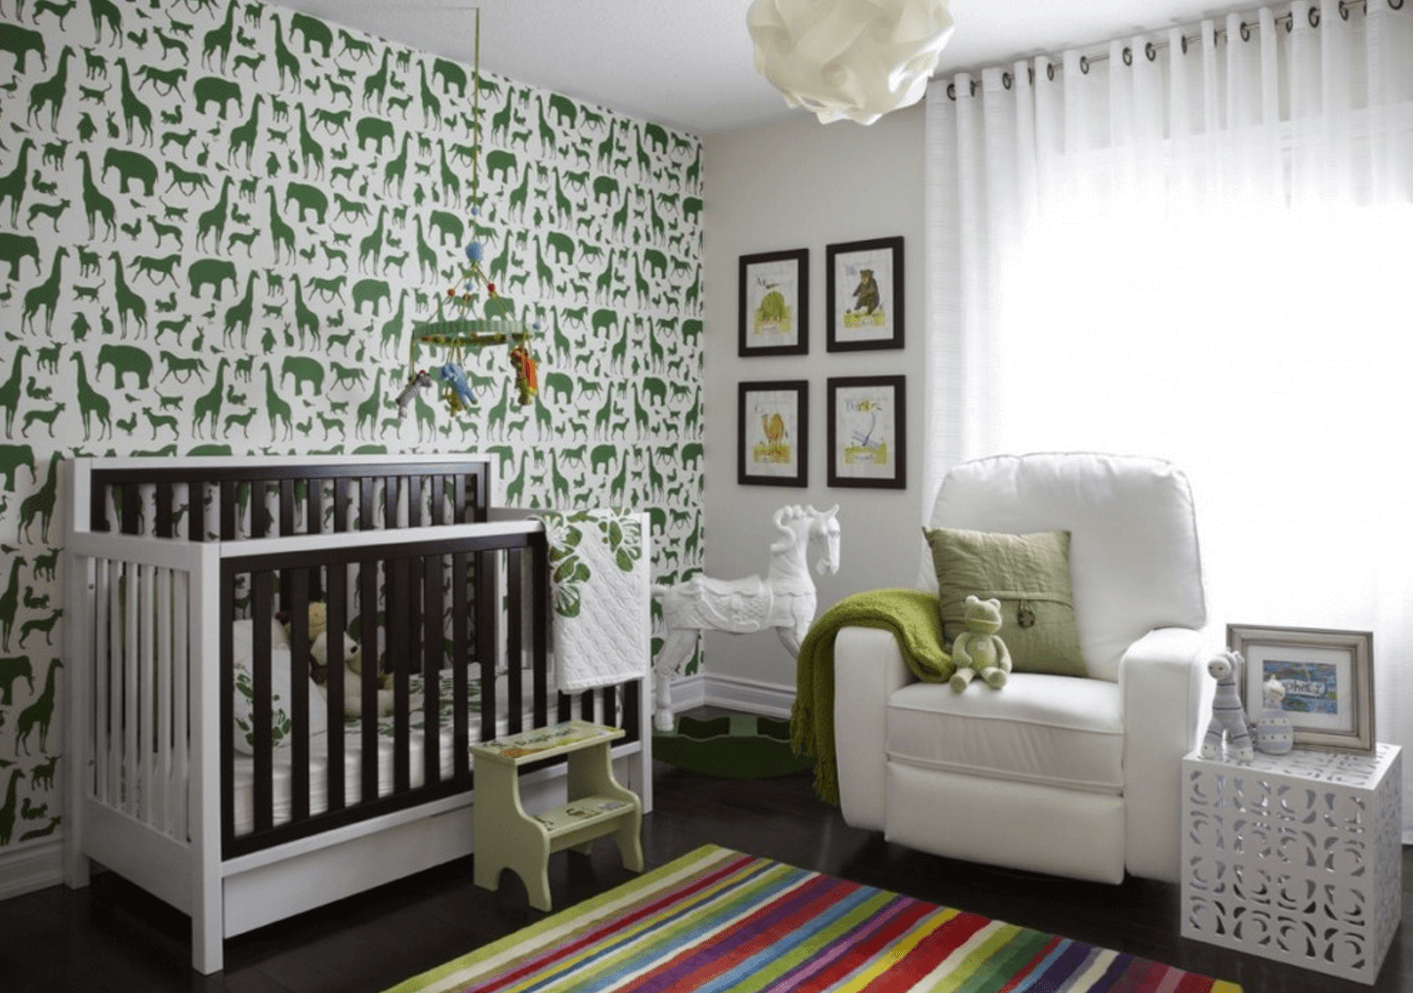 Set Up Baby Nursery 3252720 Hd Wallpaper Backgrounds Download